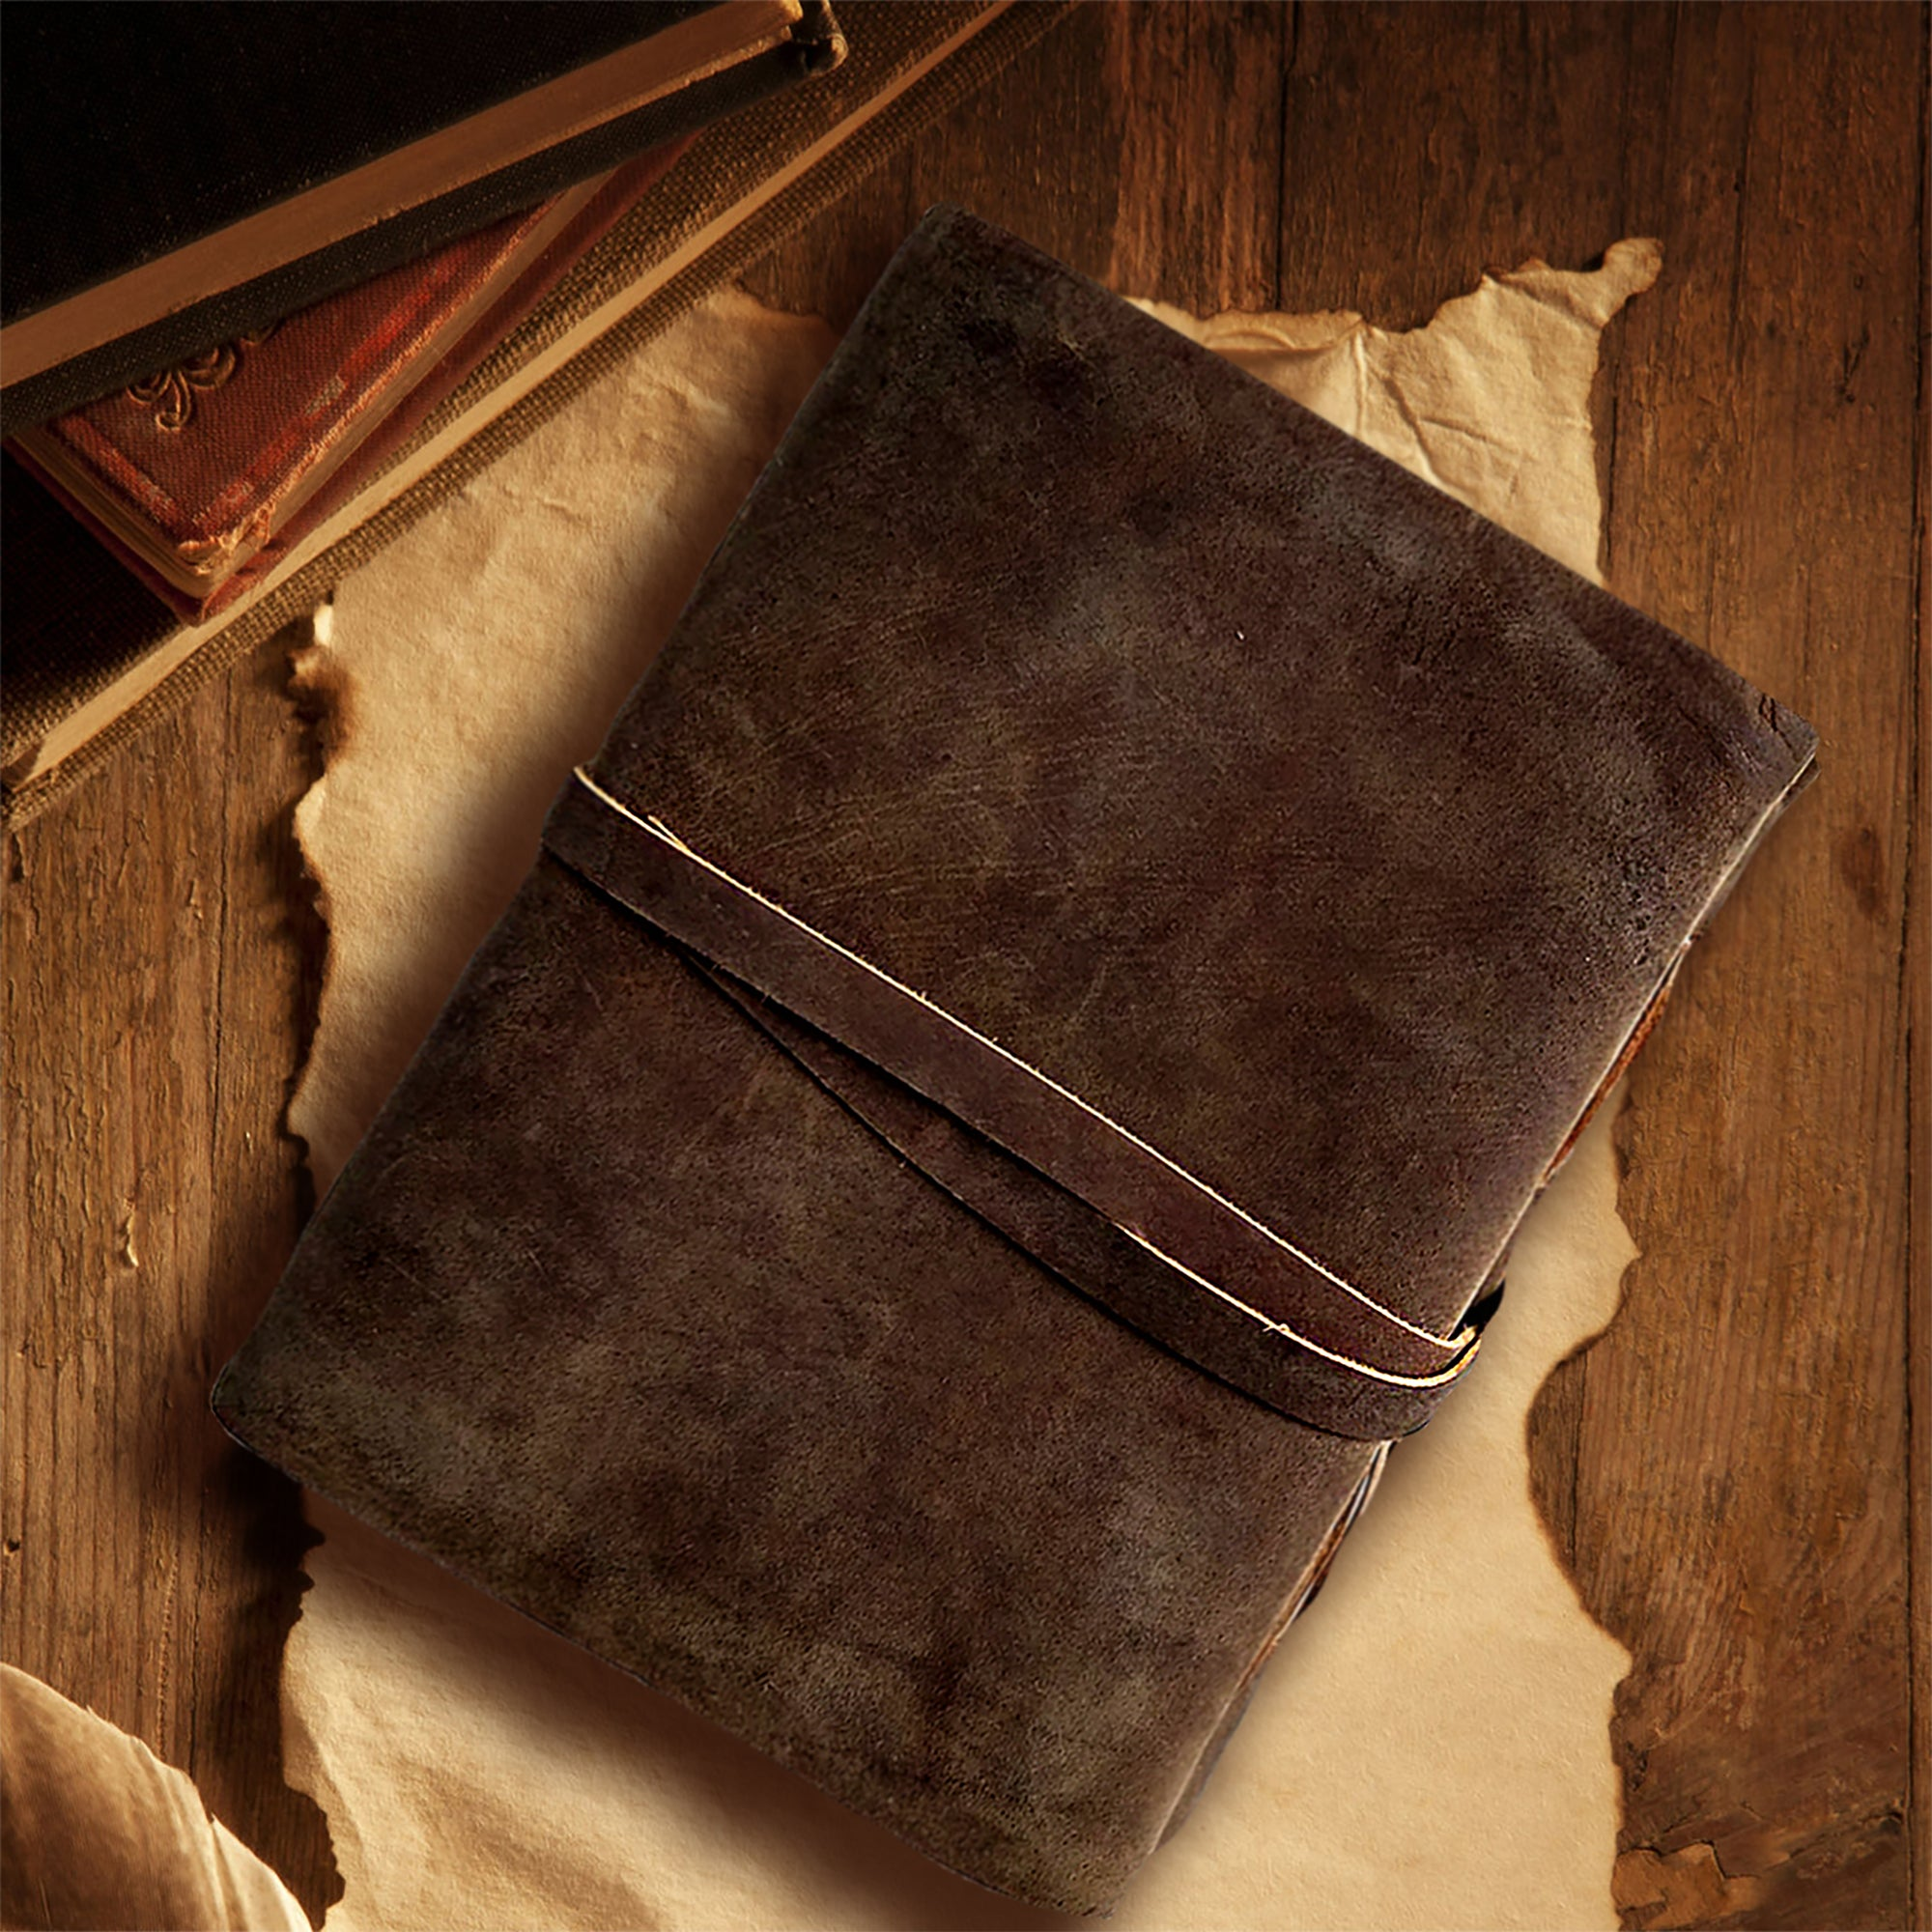 Leather Bound Journal - Handmade